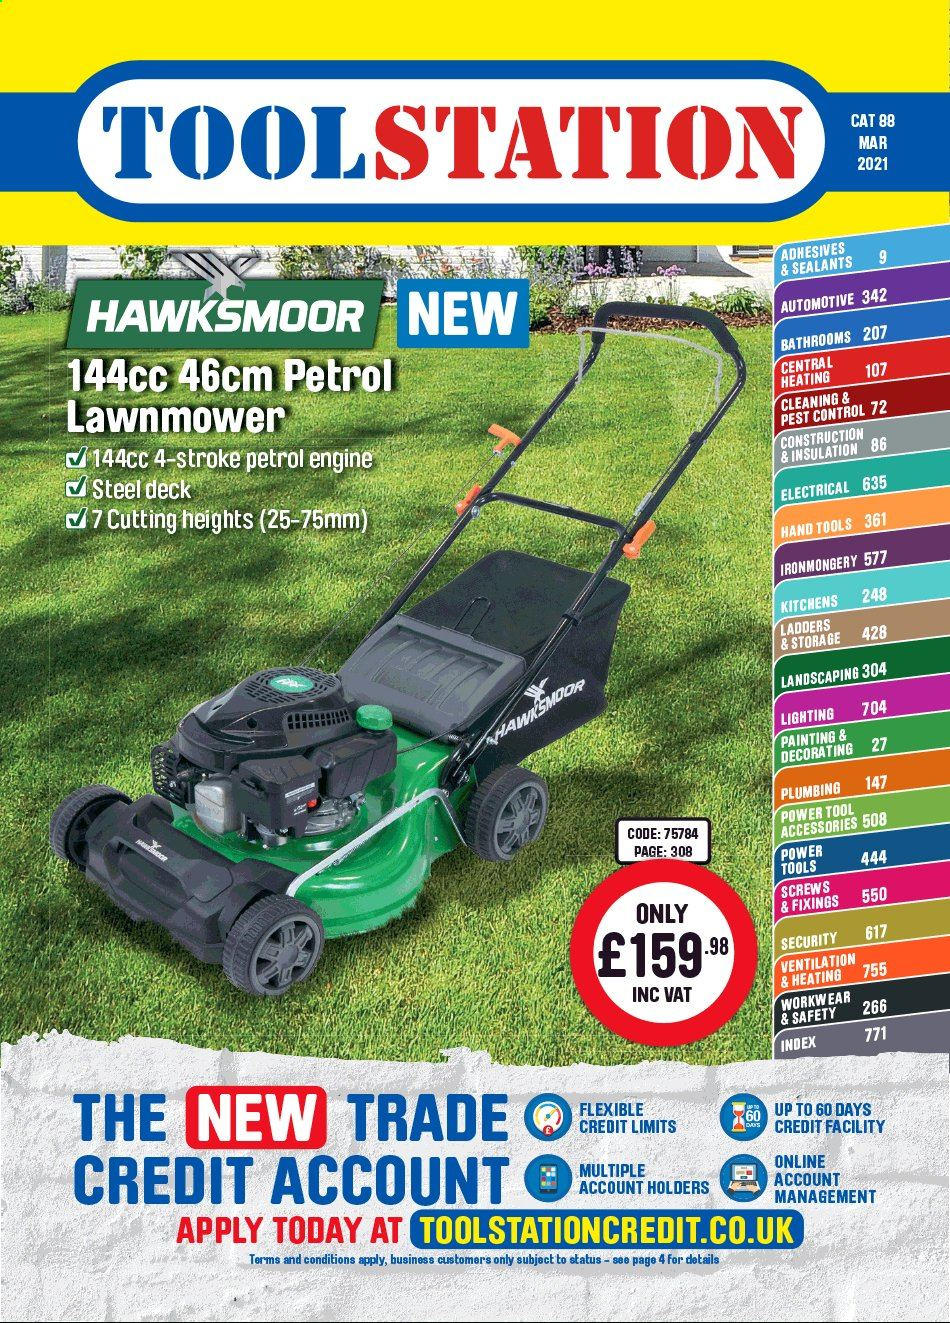 Toolstation offer  - 15.3.2021 - 30.4.2021 - Sales products - power tools, lawn mower, hand tools, painting kit. Page 1.